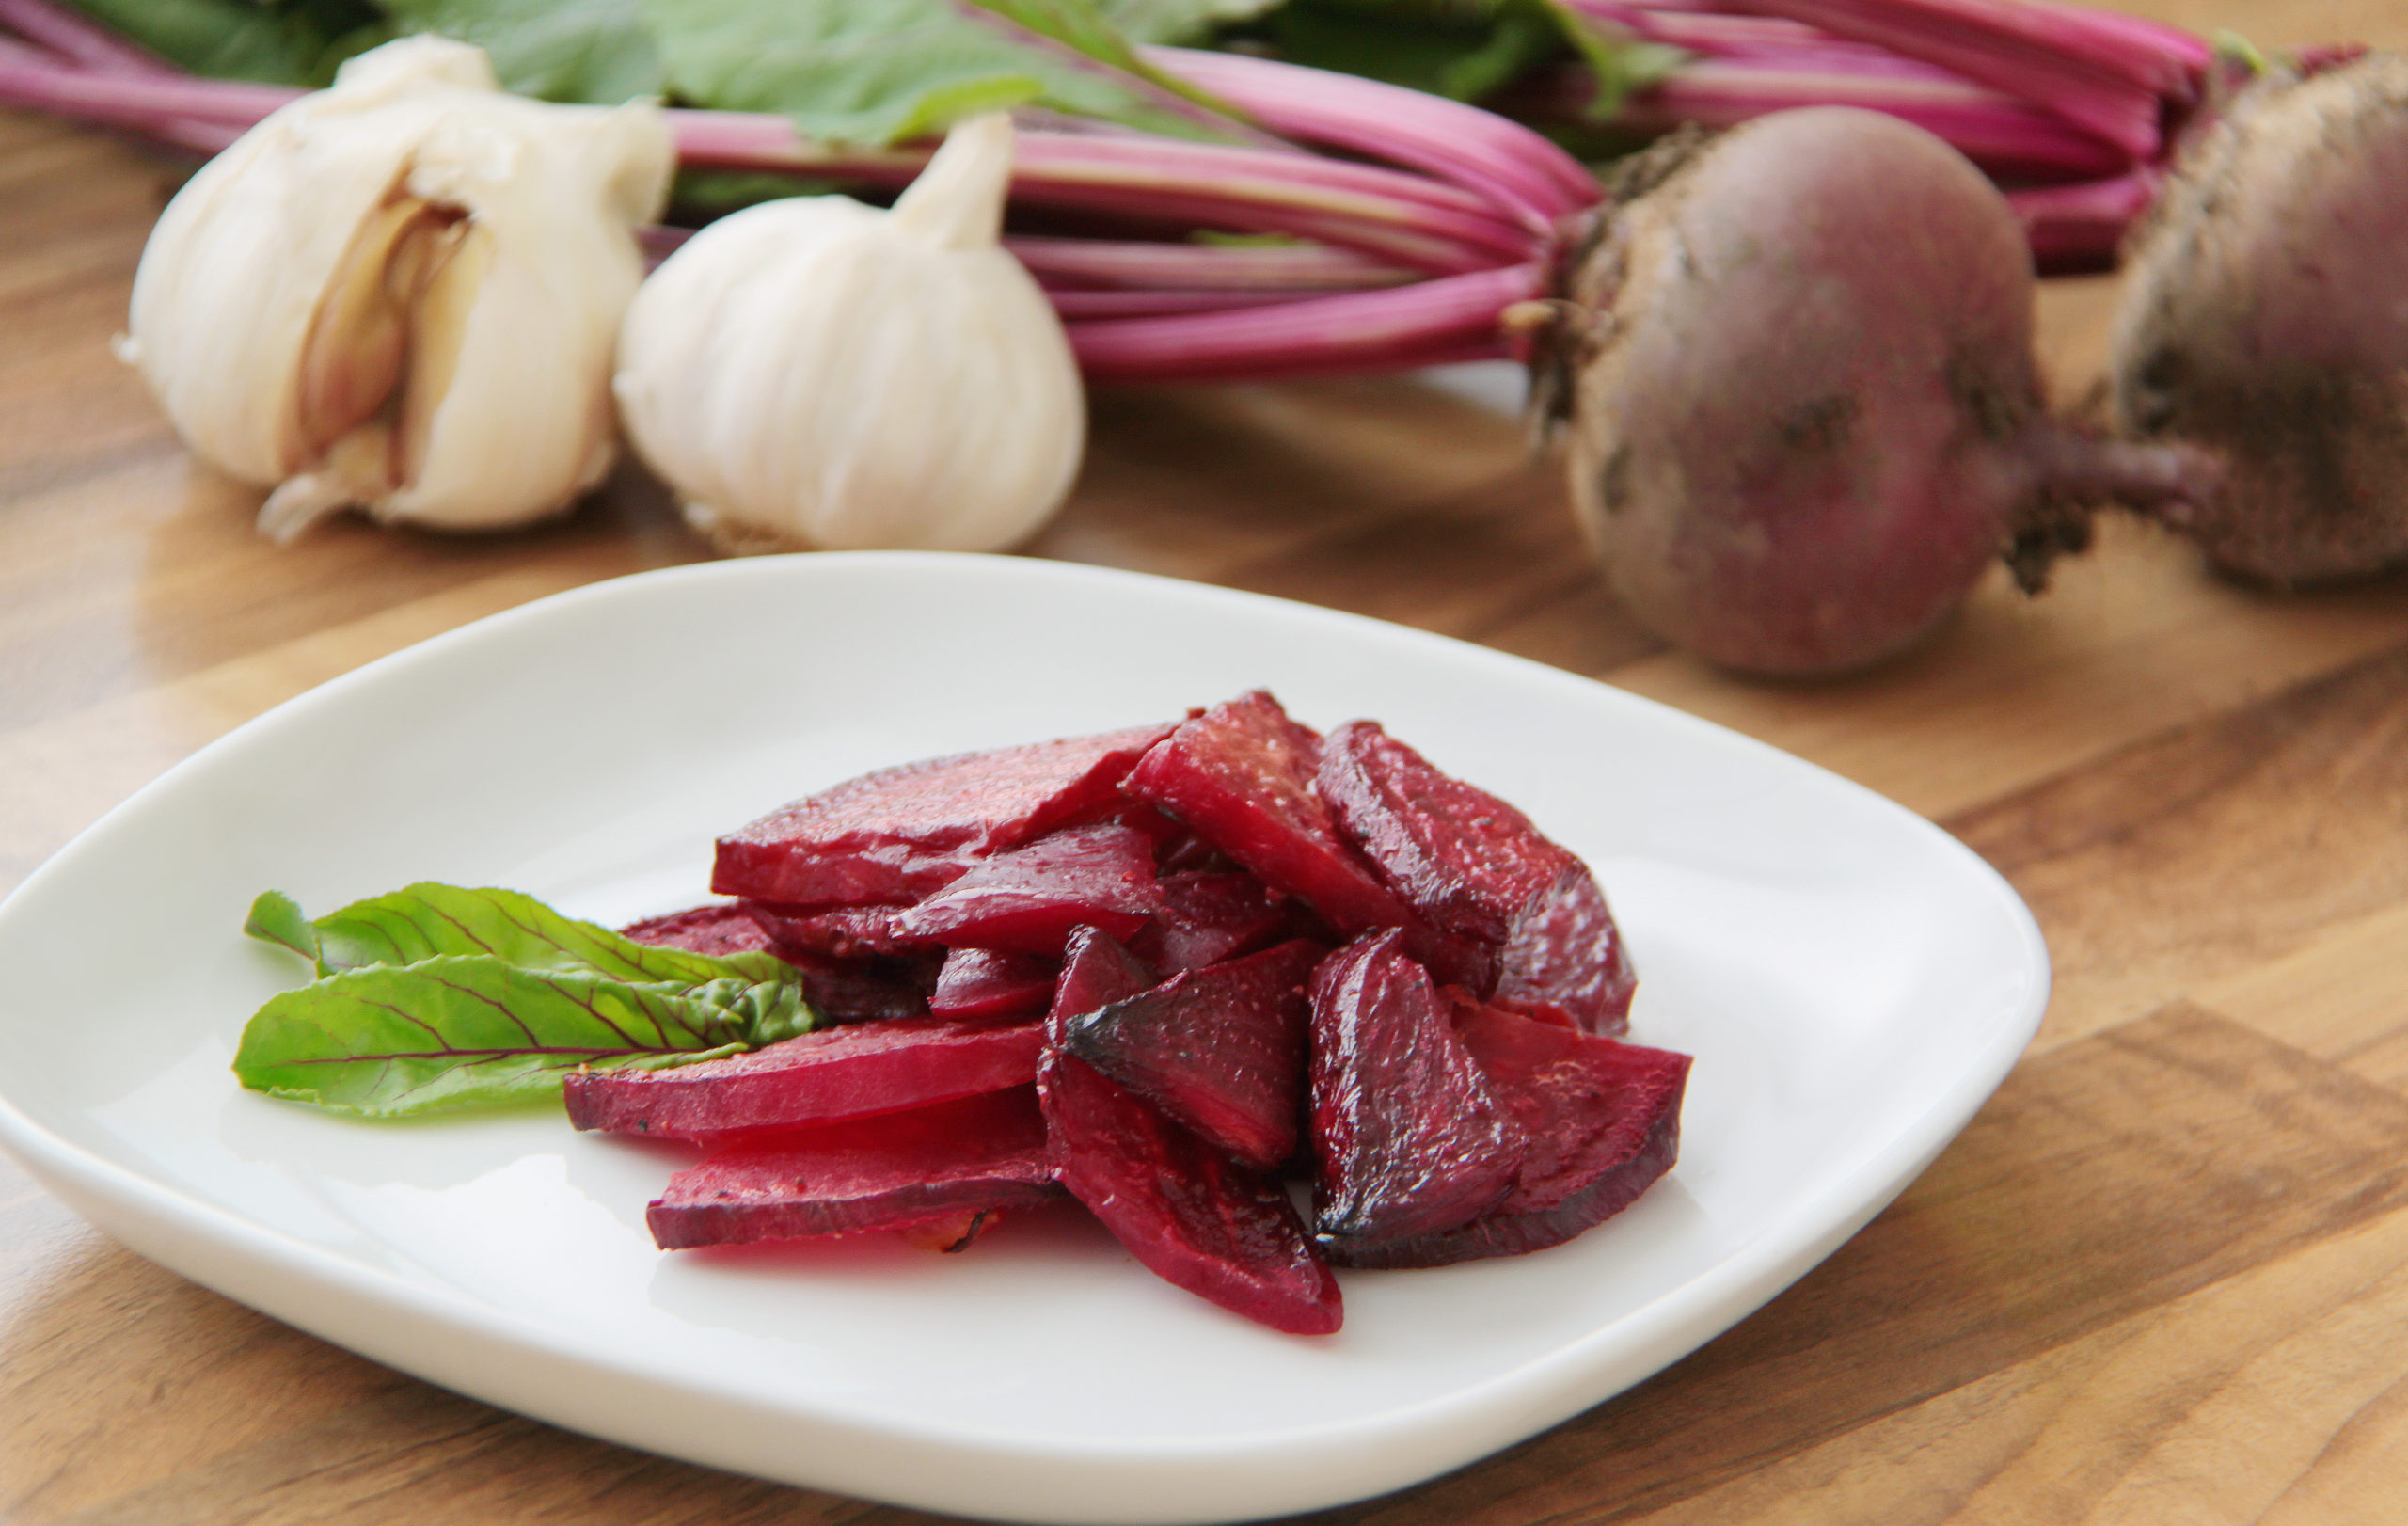 Roasted-slices-of-beetroot-served-on-a-white-plate-scaled